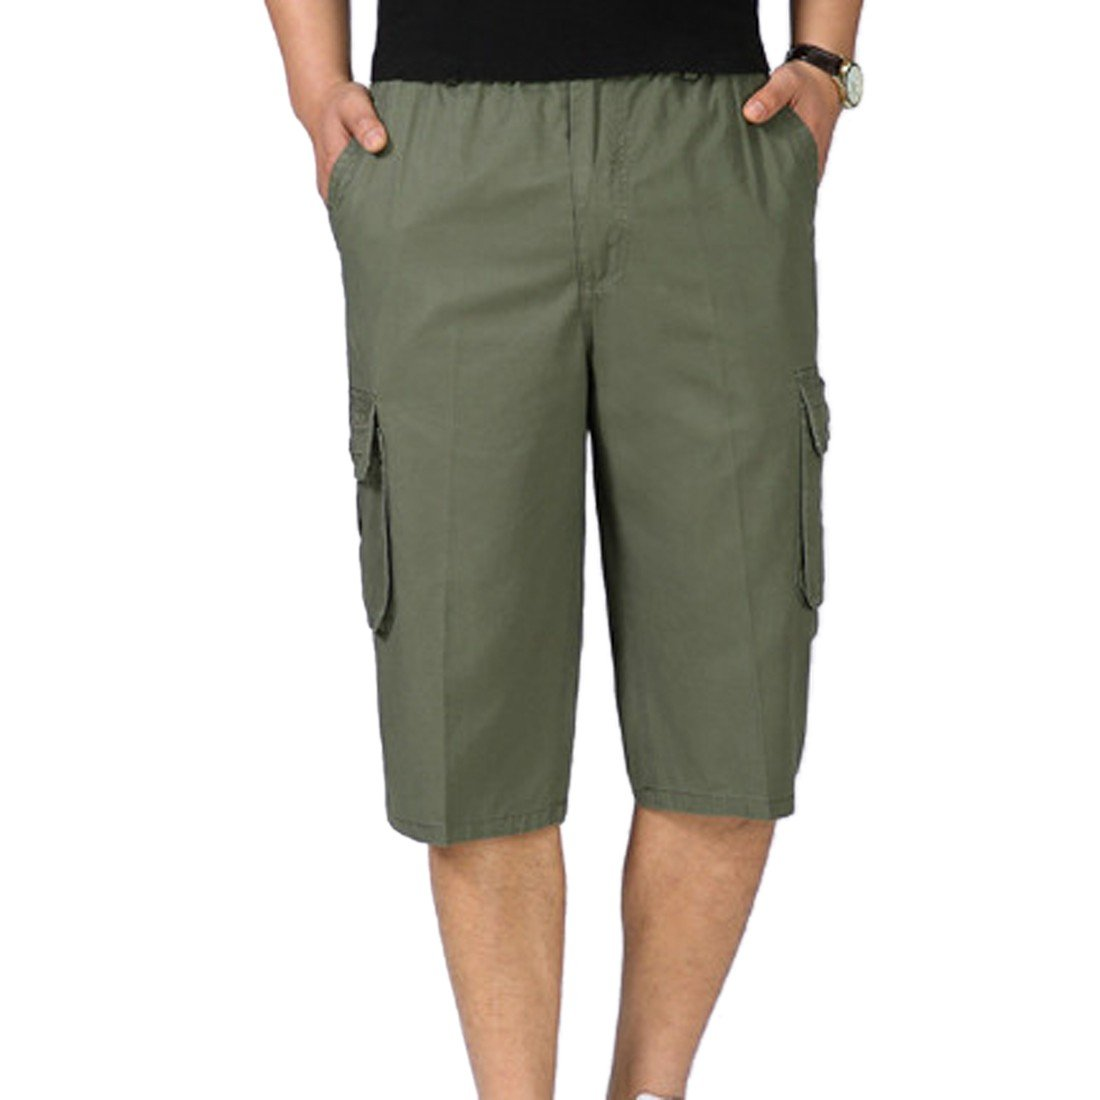 Men's Classic-Fit Cargo Short Cotton Loose Fit Multi Pocket Cargo Shorts E3096S0286